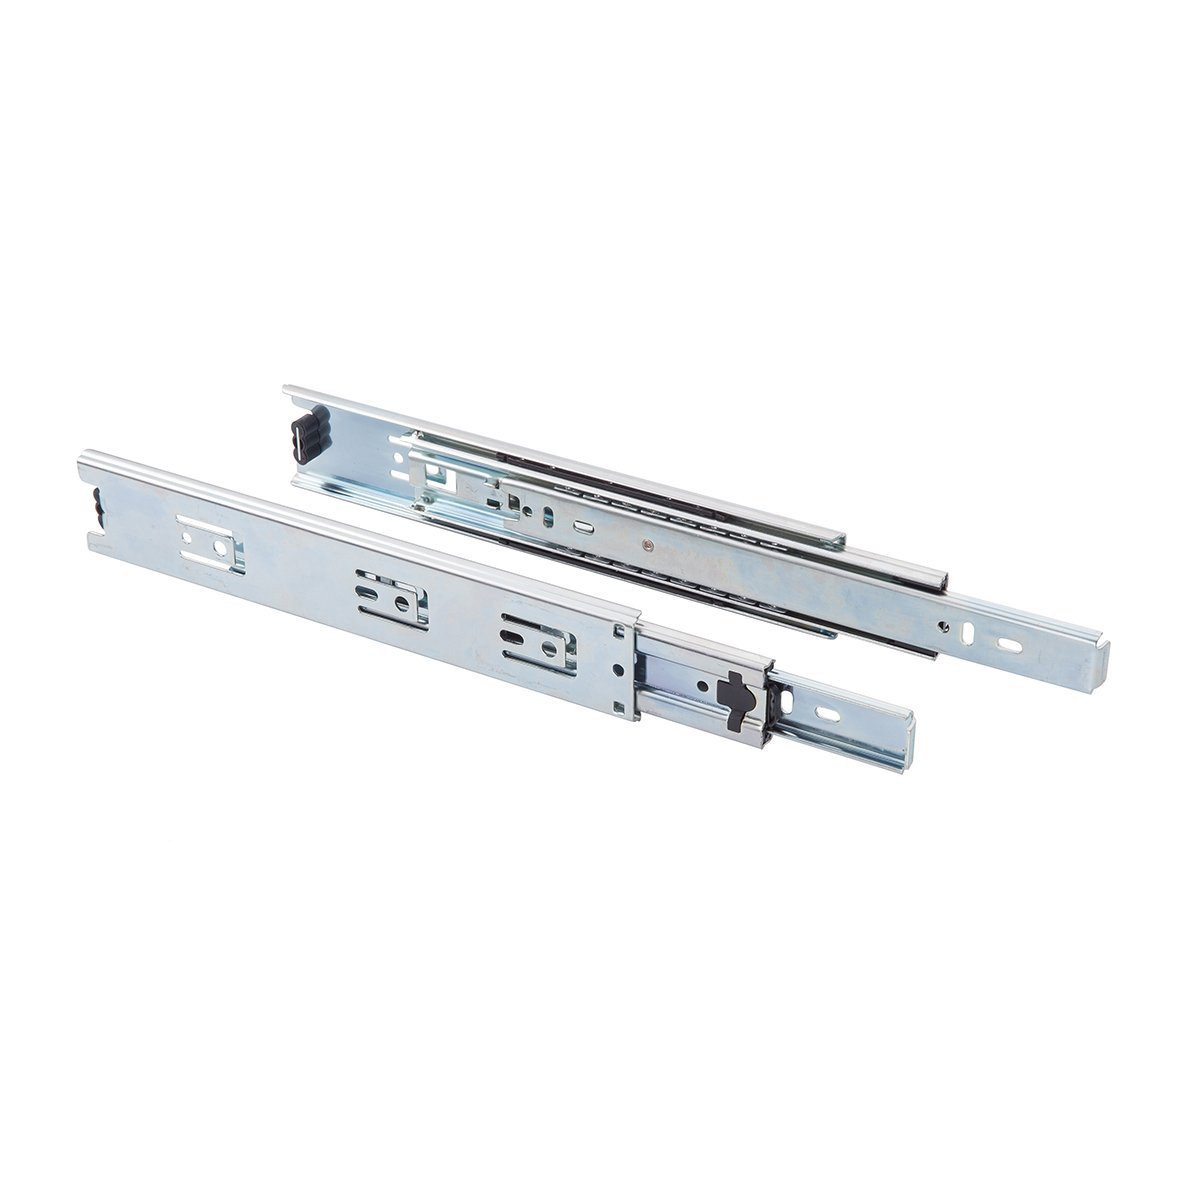 WoodworkPro Ball Bearing Drawer Slides, 28'', Nickel Plated-Steel, 1-Pair